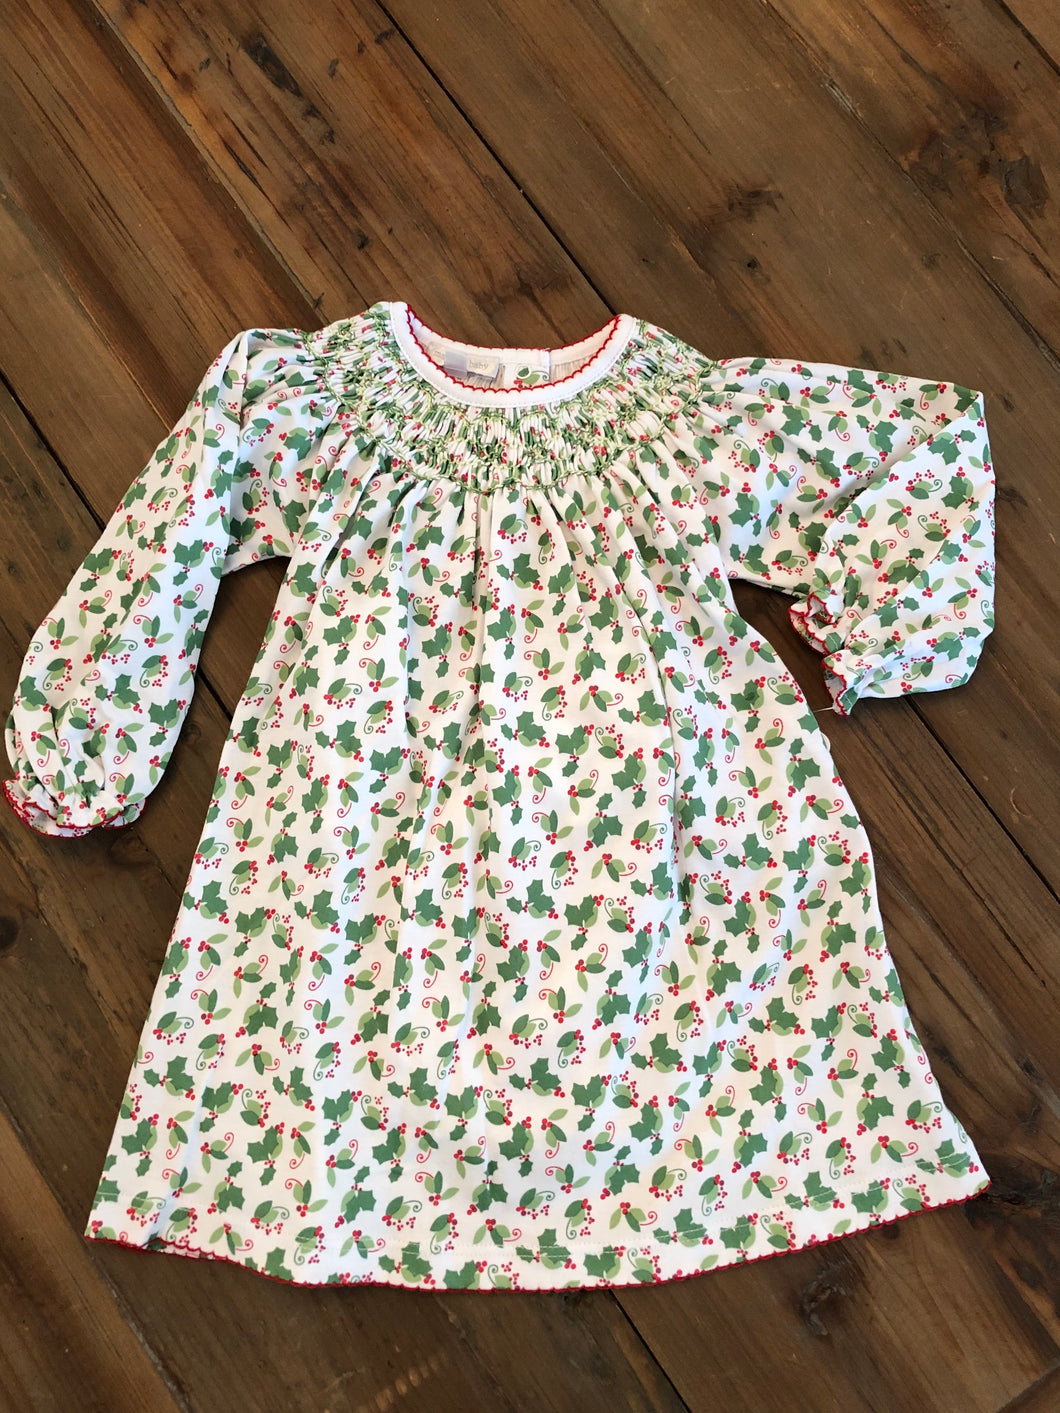 Magnolia Baby Happy Holly Days Bishop Dress